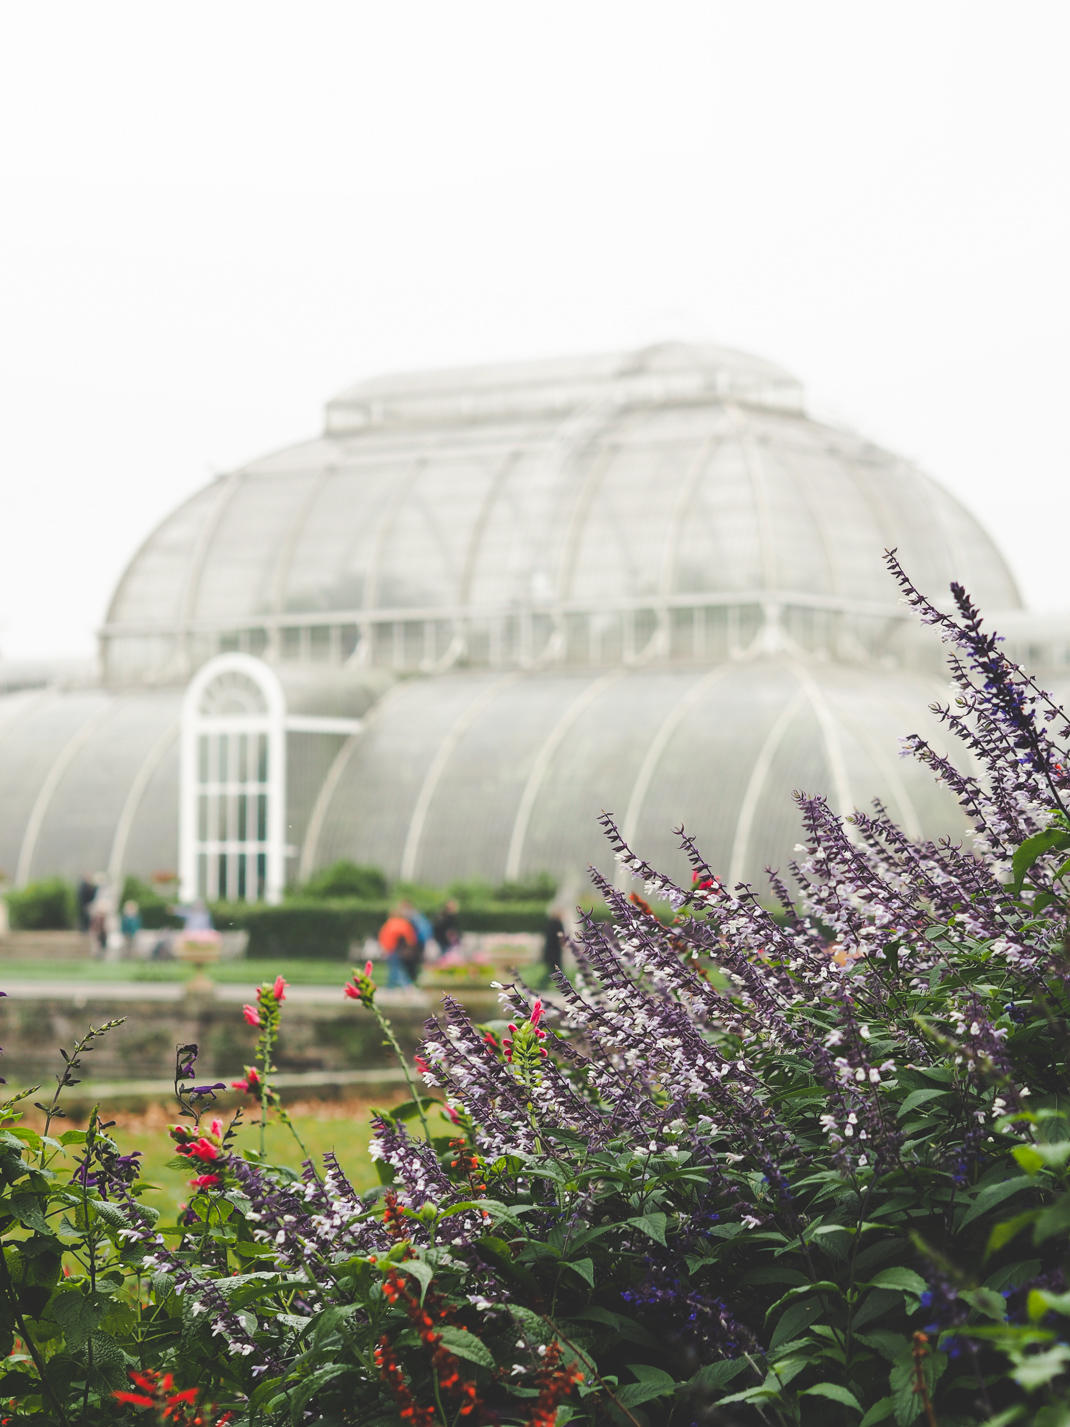 kew gardens greenhouse